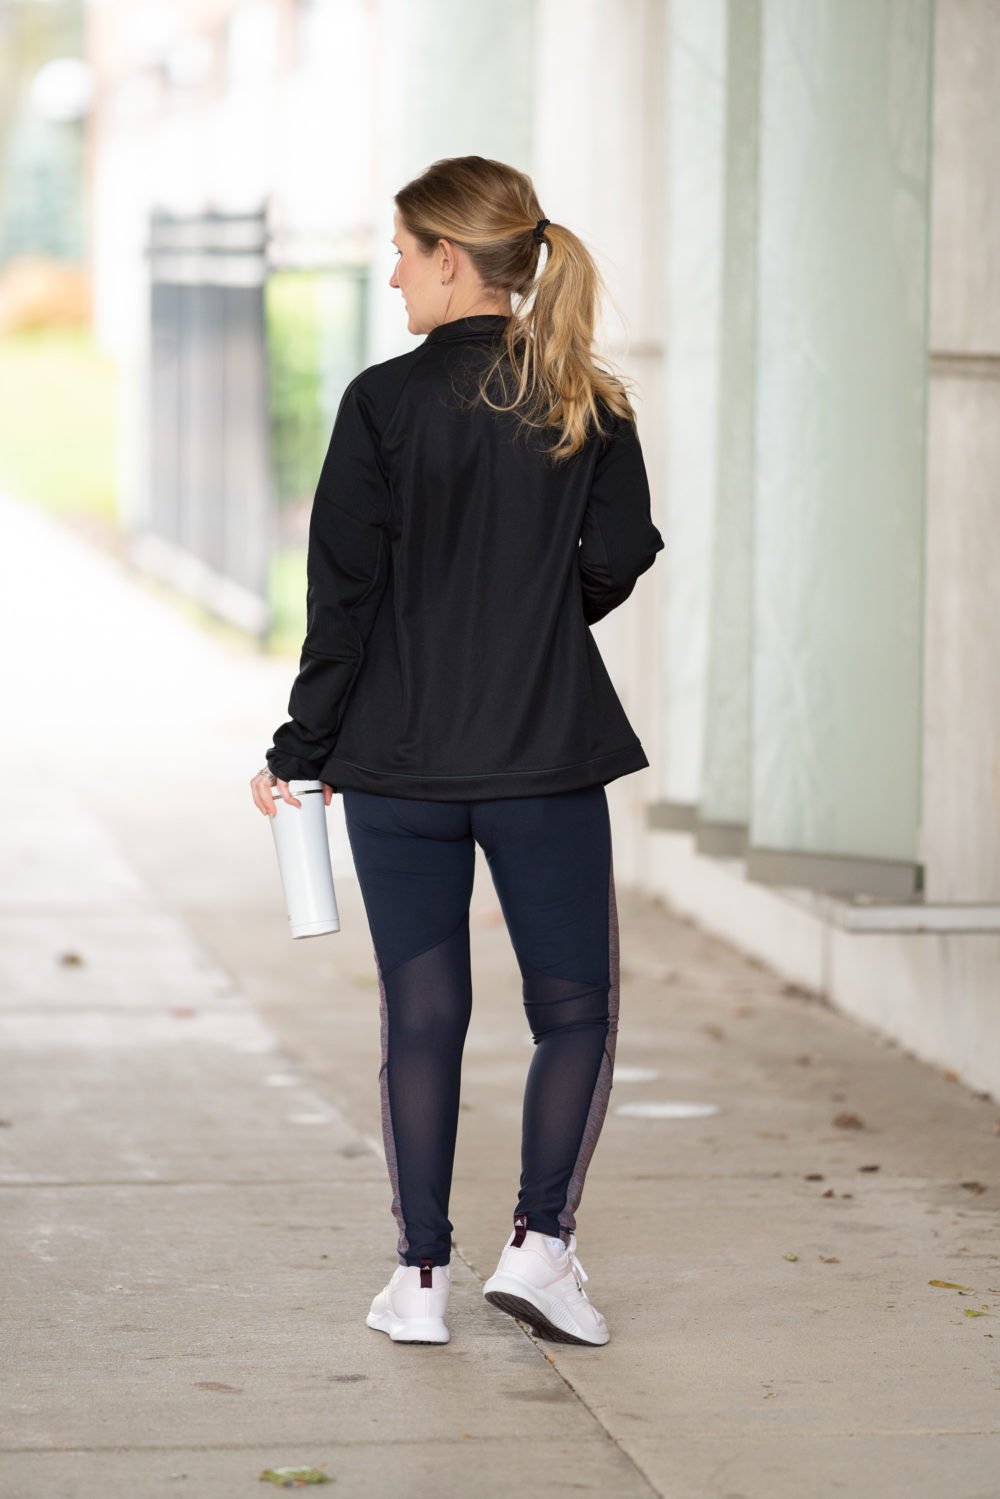 Petite Fashion and Style Blog | Adidas Workout Wear | The Heroes in Our Lives